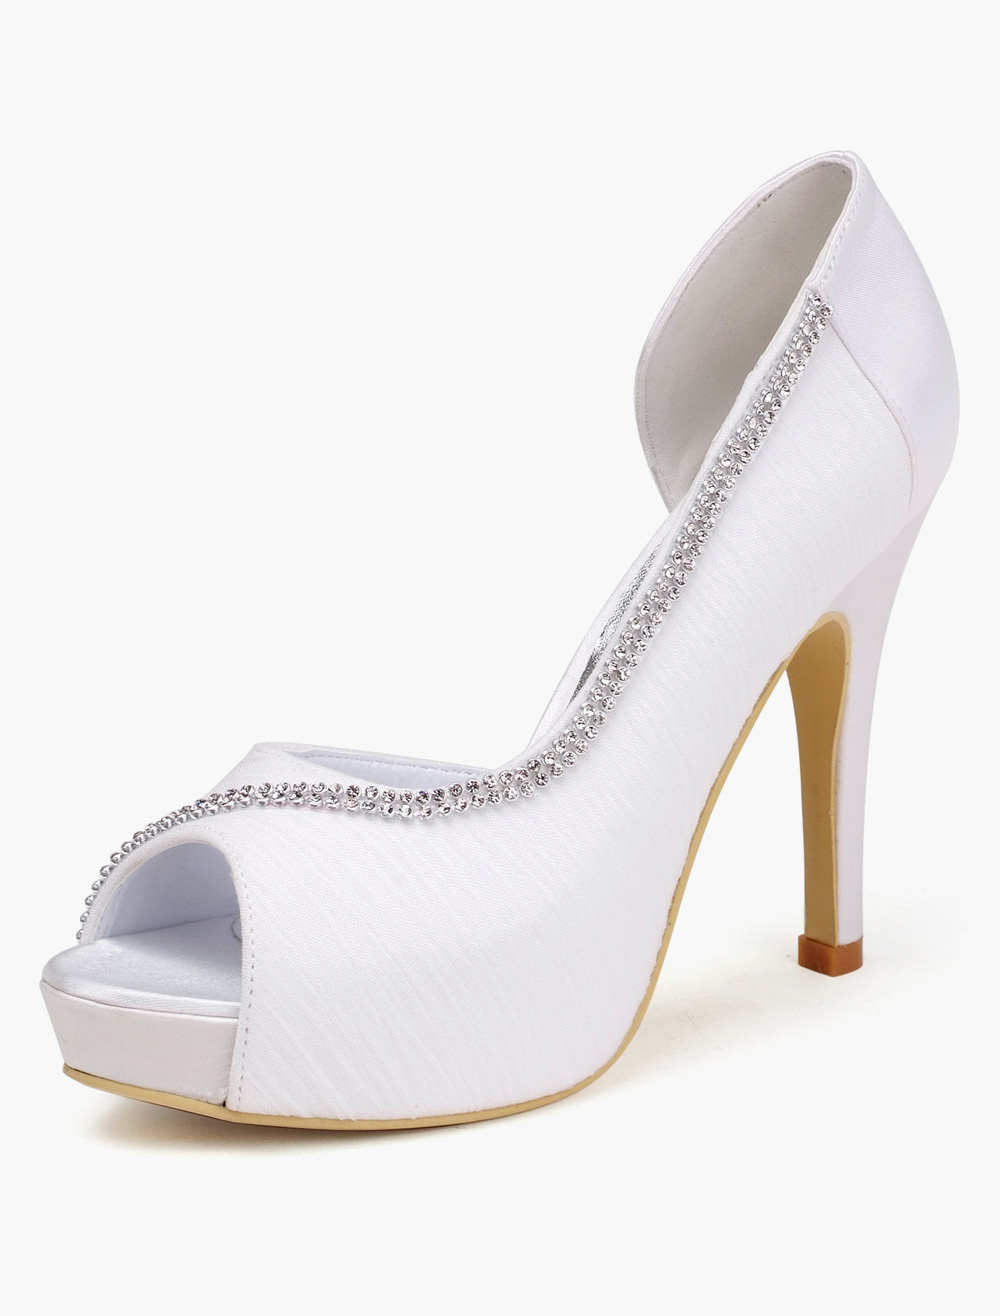 Buy White Rhinestones Peep Toe Silk And Satin Evening and Bride's Sandals for $56.99 in Milanoo store